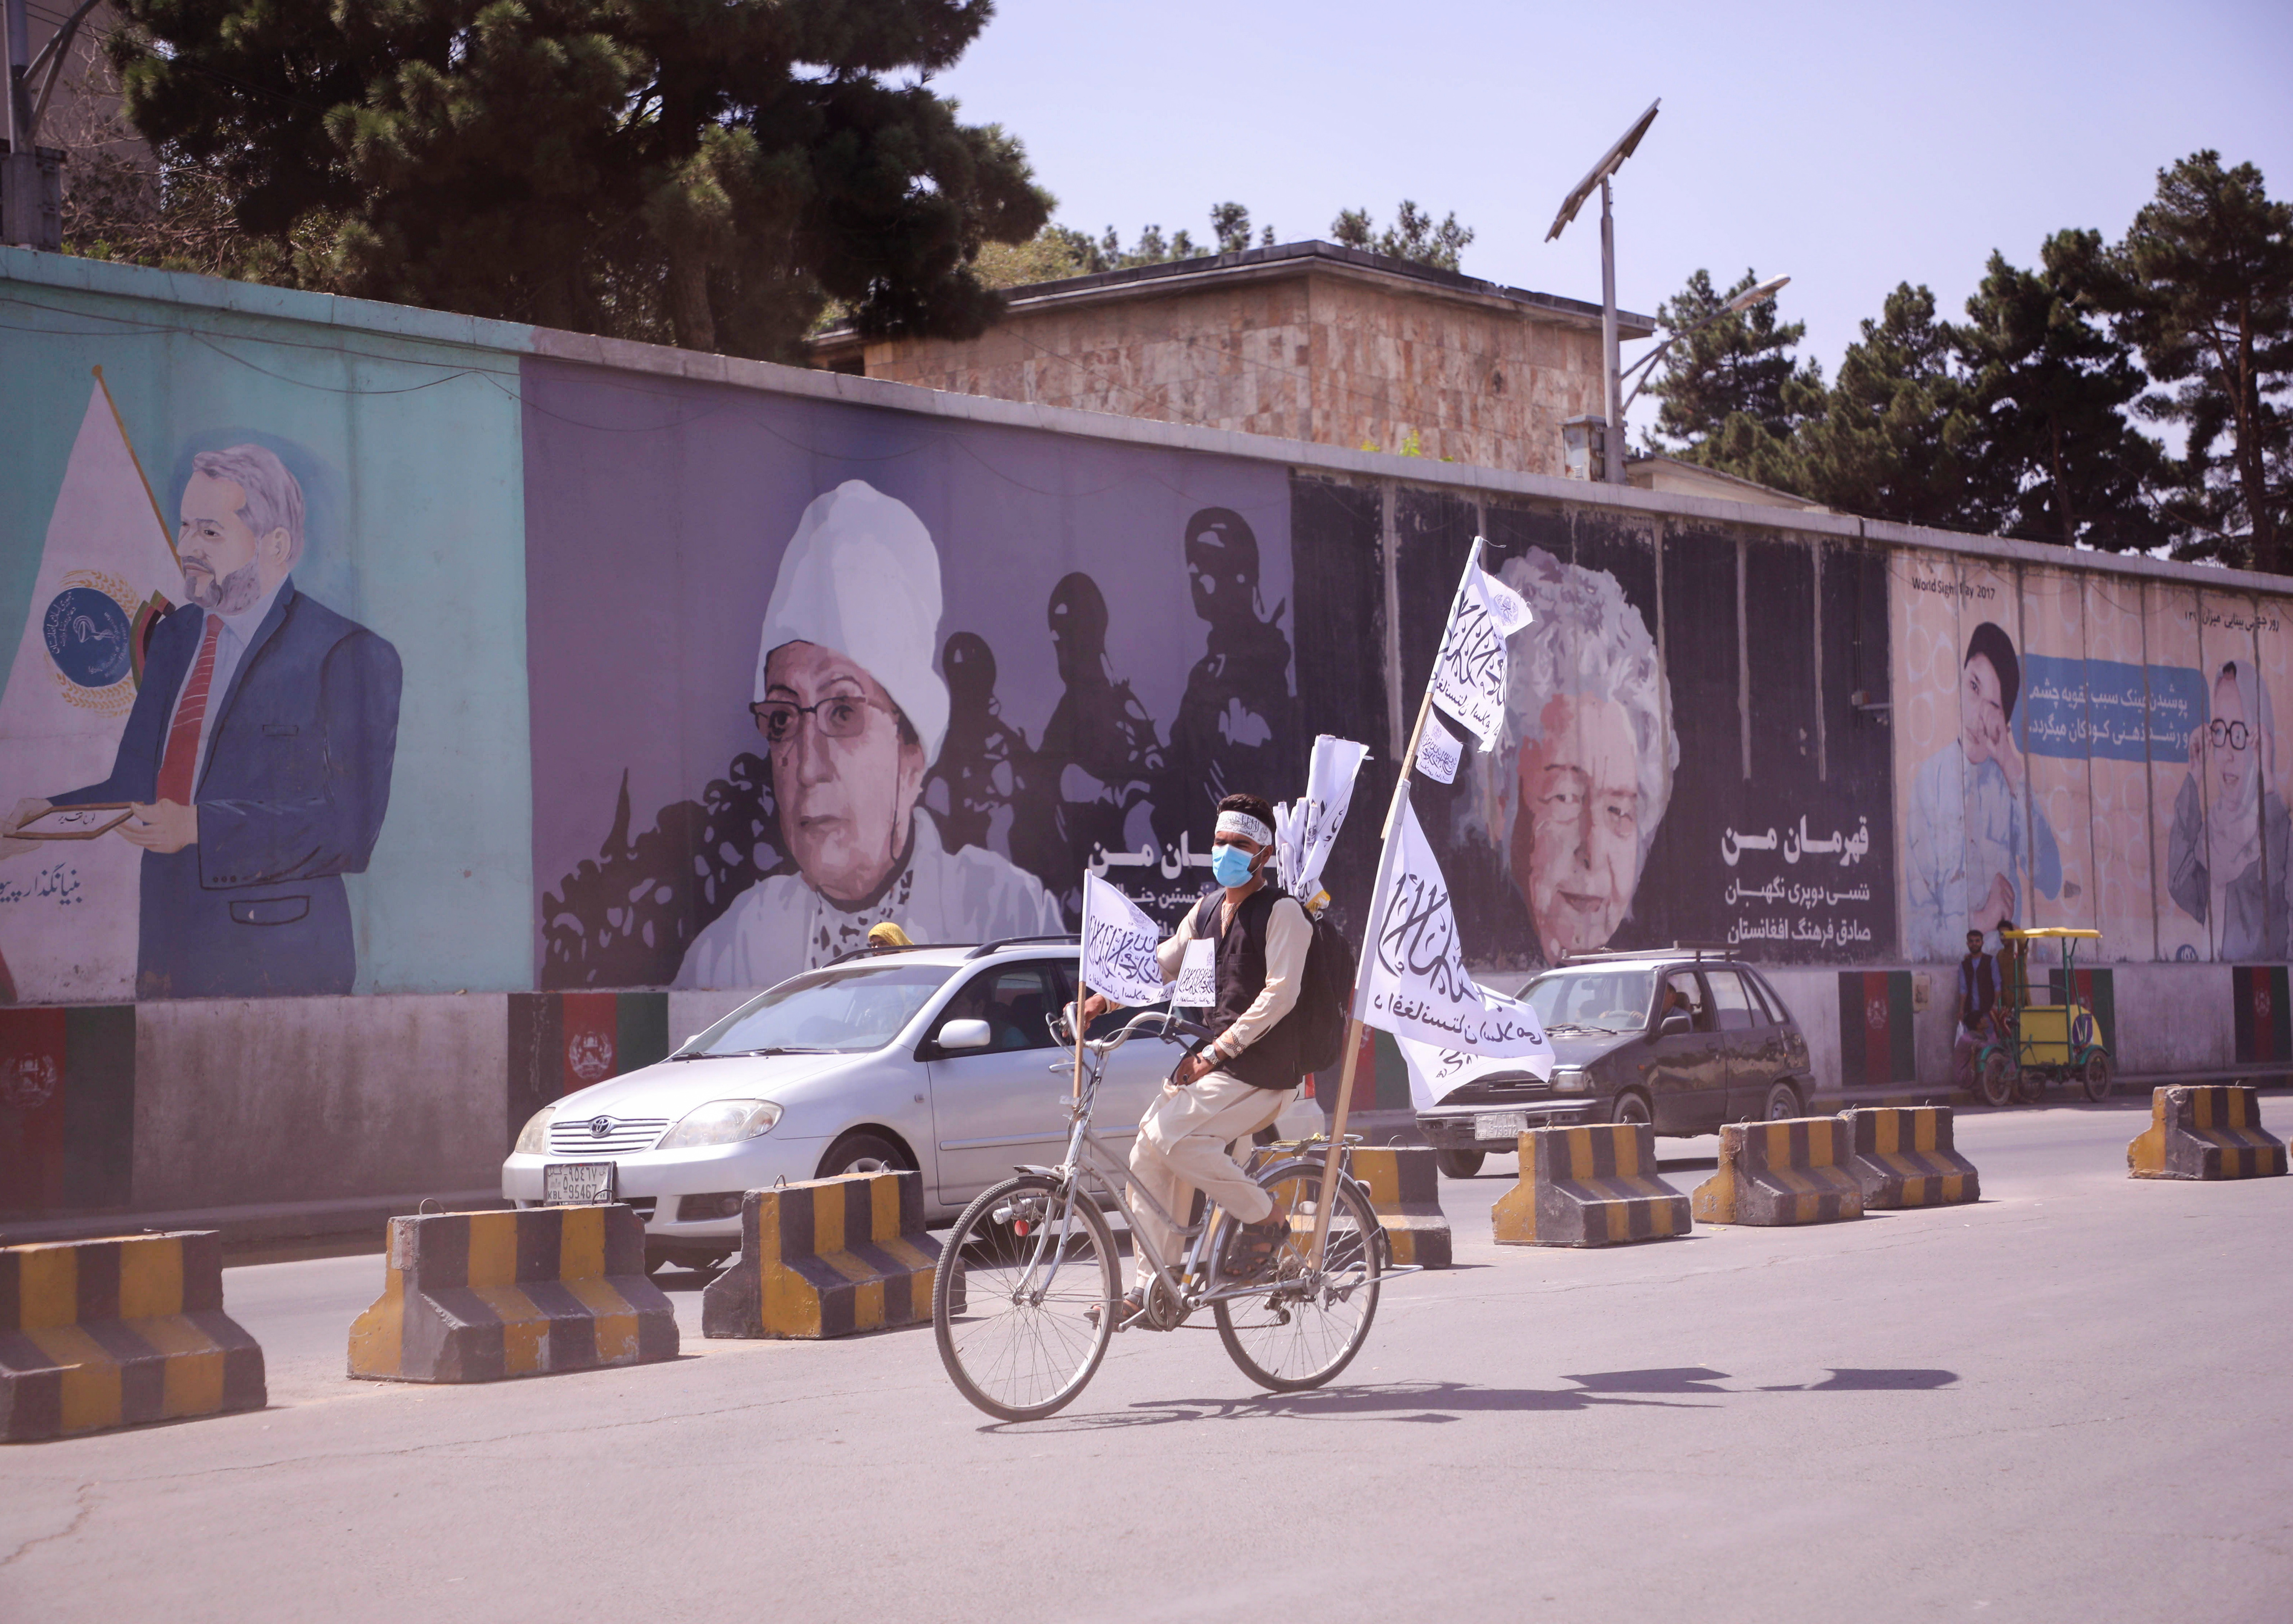 An Afghan man rides on his bicycle as he holds the Taliban flag in Kabul, Afghanistan, September 2, 2021. REUTERS/Stringer